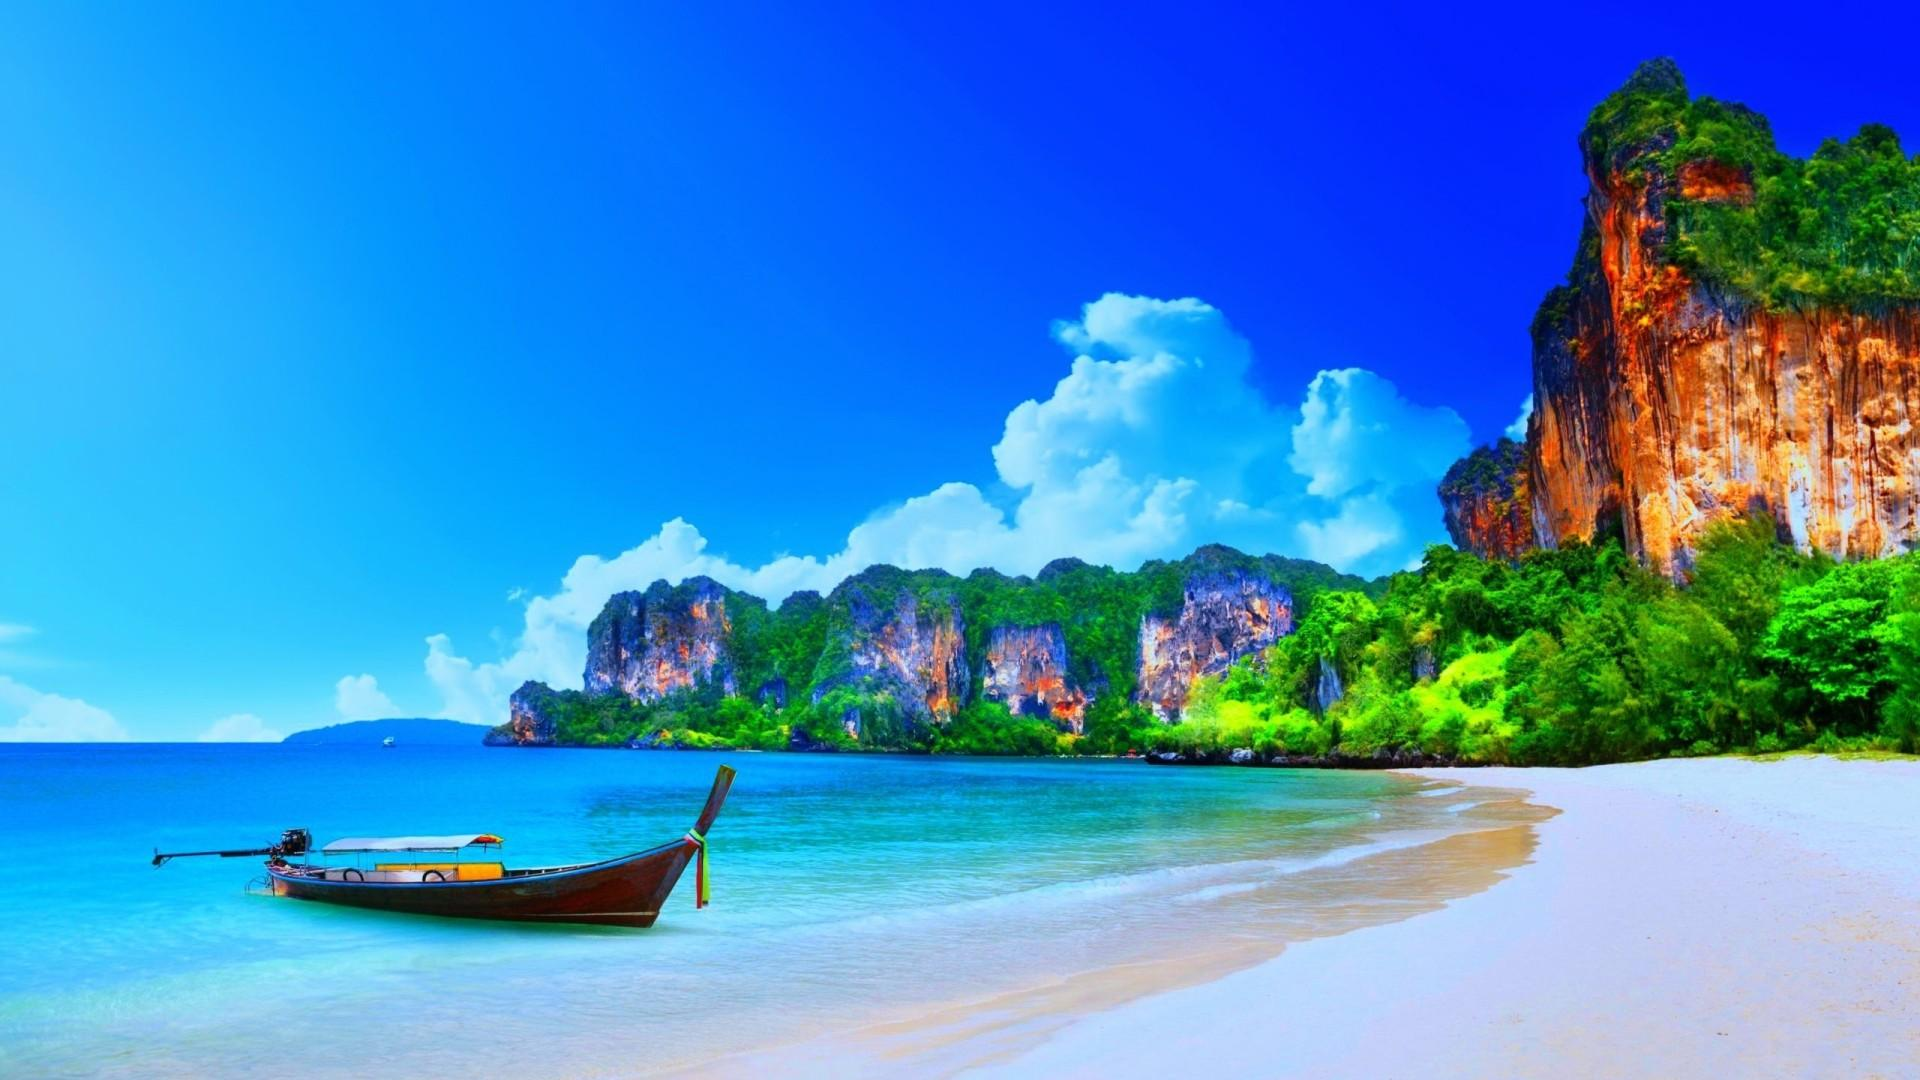 thailand beach #wallpapers - HD Wallpapers